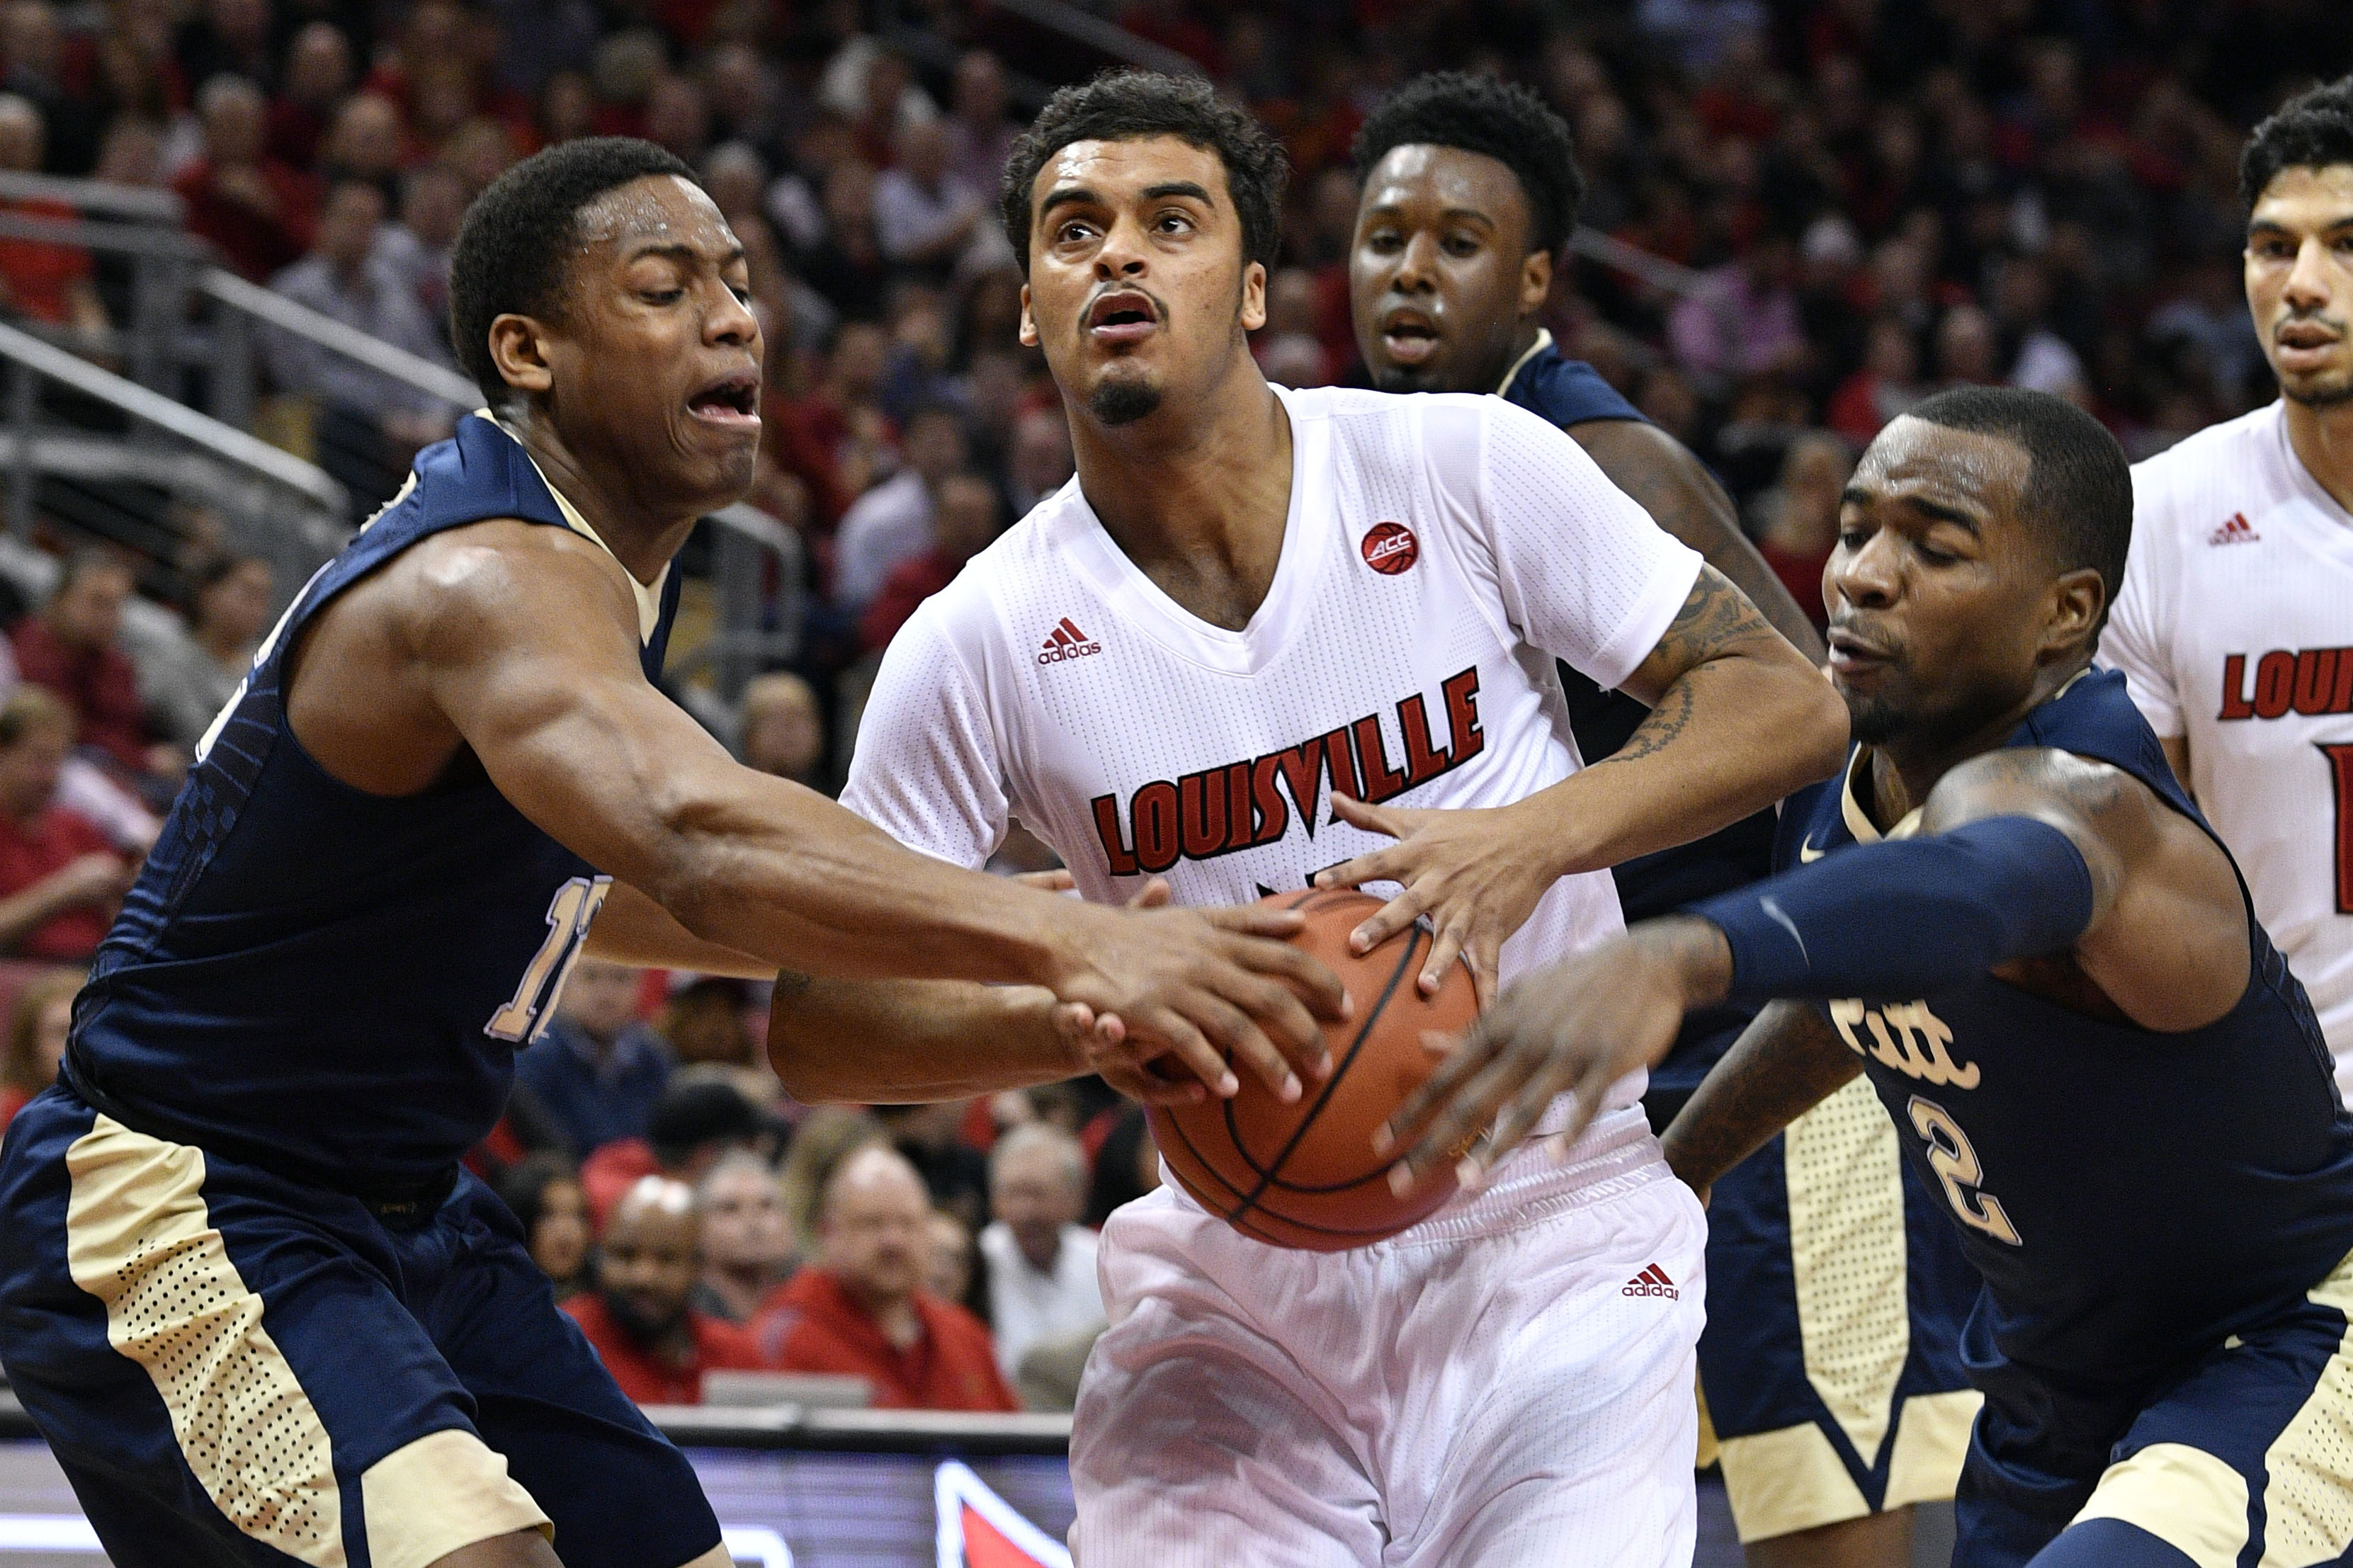 Syracuse goes OT, loses to Louisville